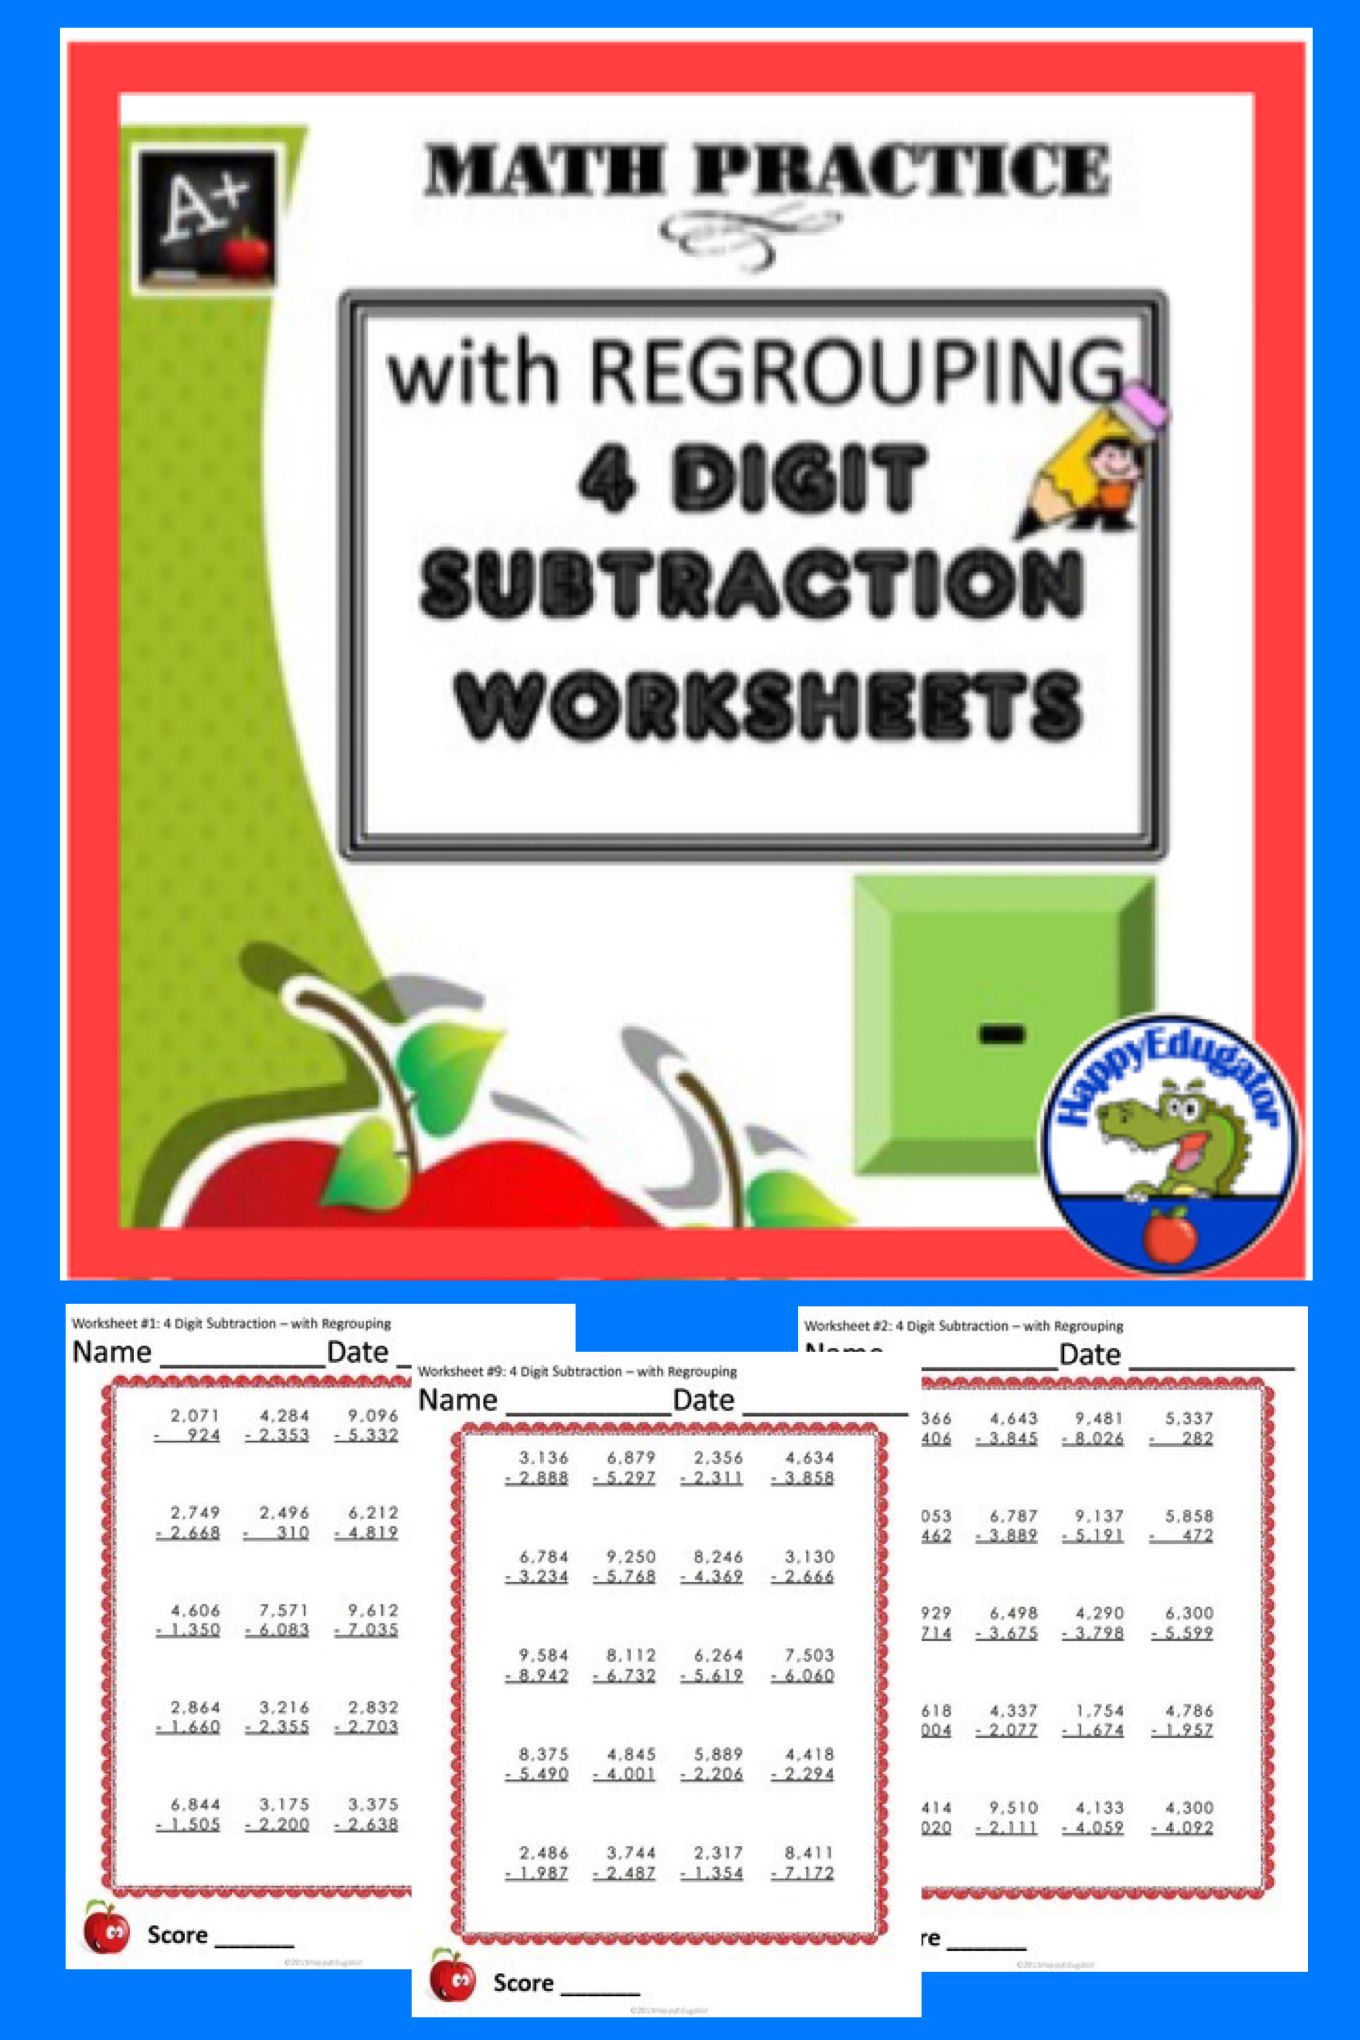 4 Digit Subtraction Worksheets With Regrouping